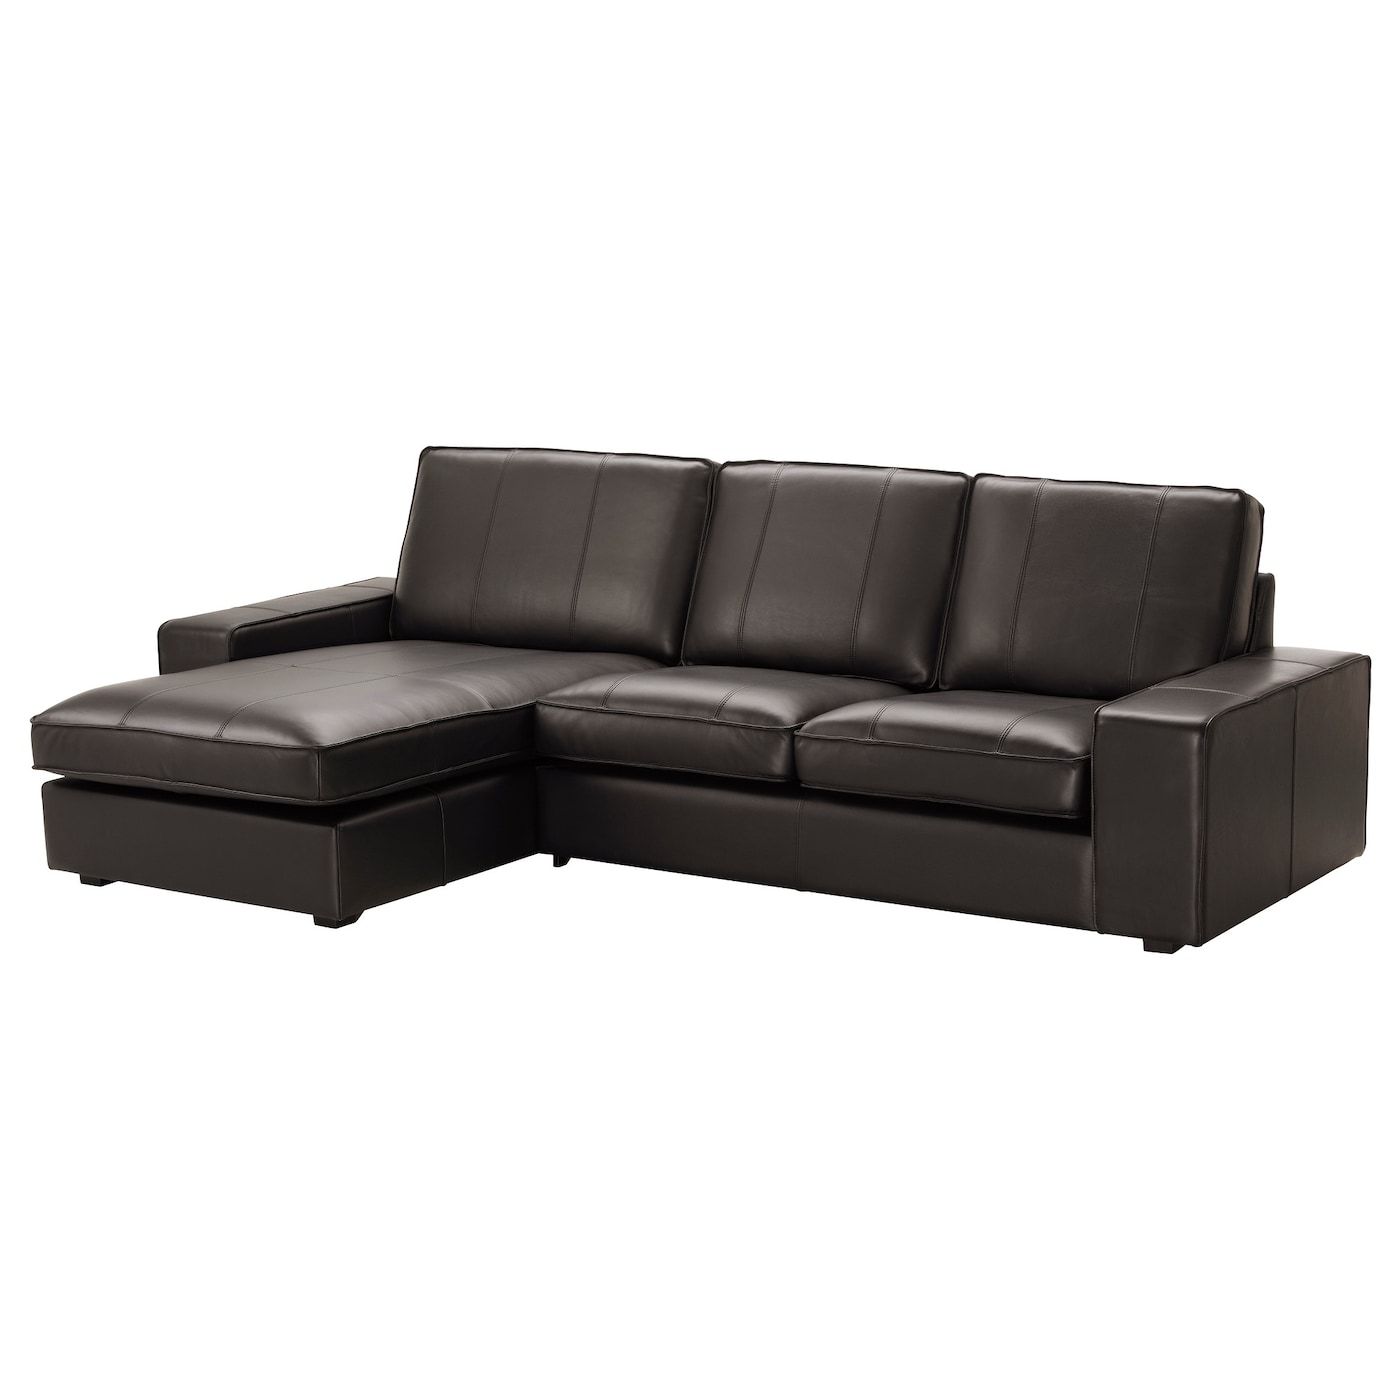 Leather coated fabric sofas ikea for Chaise 65 cm ikea